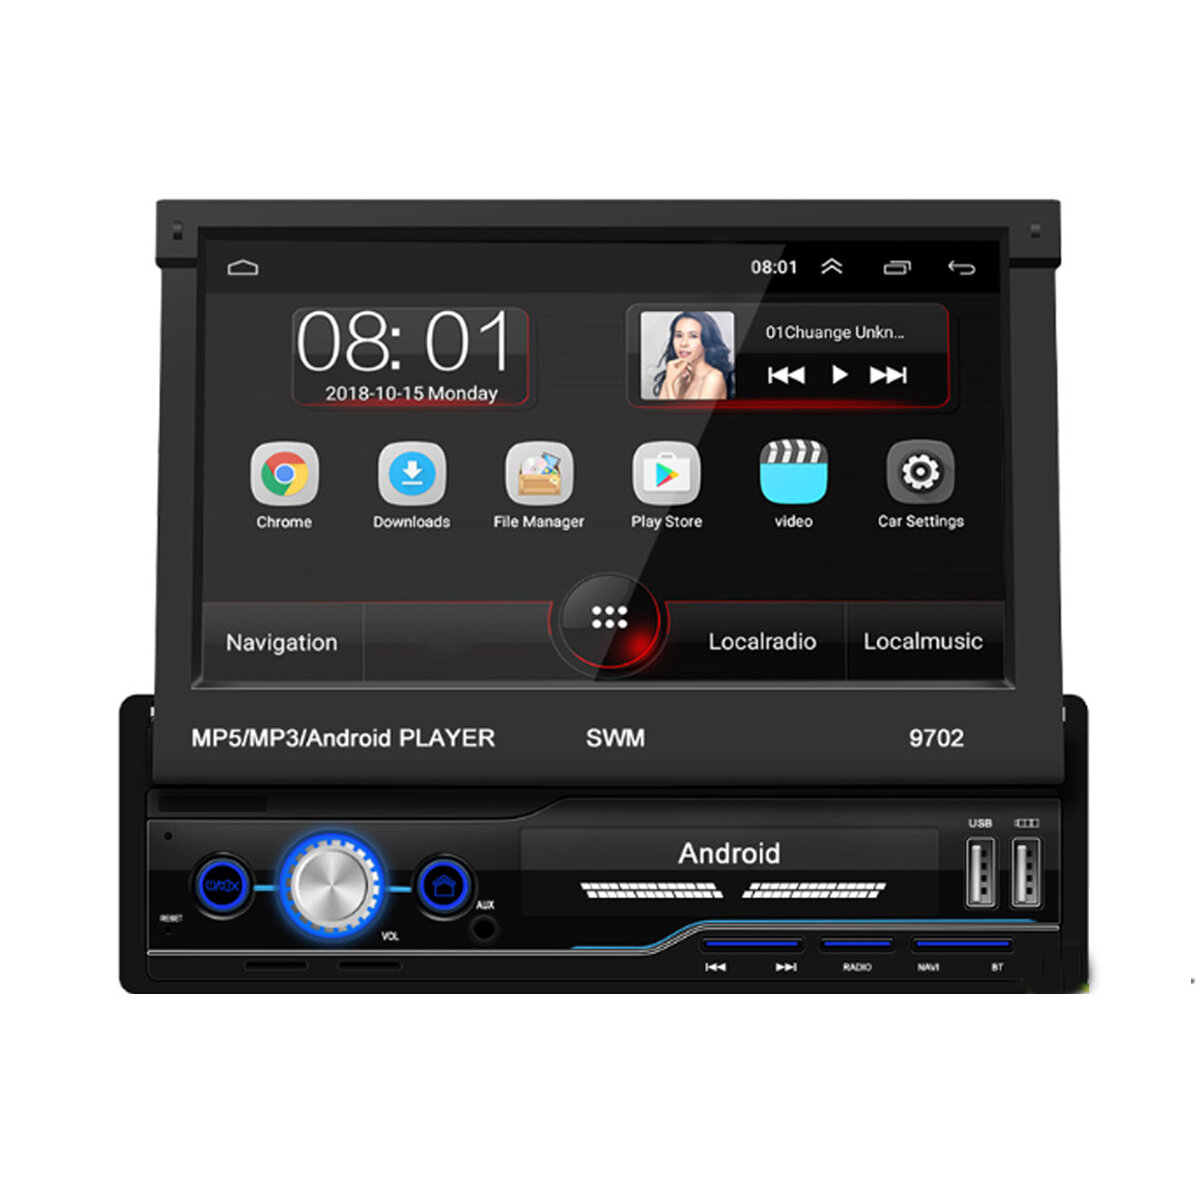 7 Inch 1 Din Android 8.1 Car Radio Stereo MP5 Player 4 Core 1+16G Retractable Touch Screen WIFI GPS bluetooth FM AUX With 4LED Backup Camera